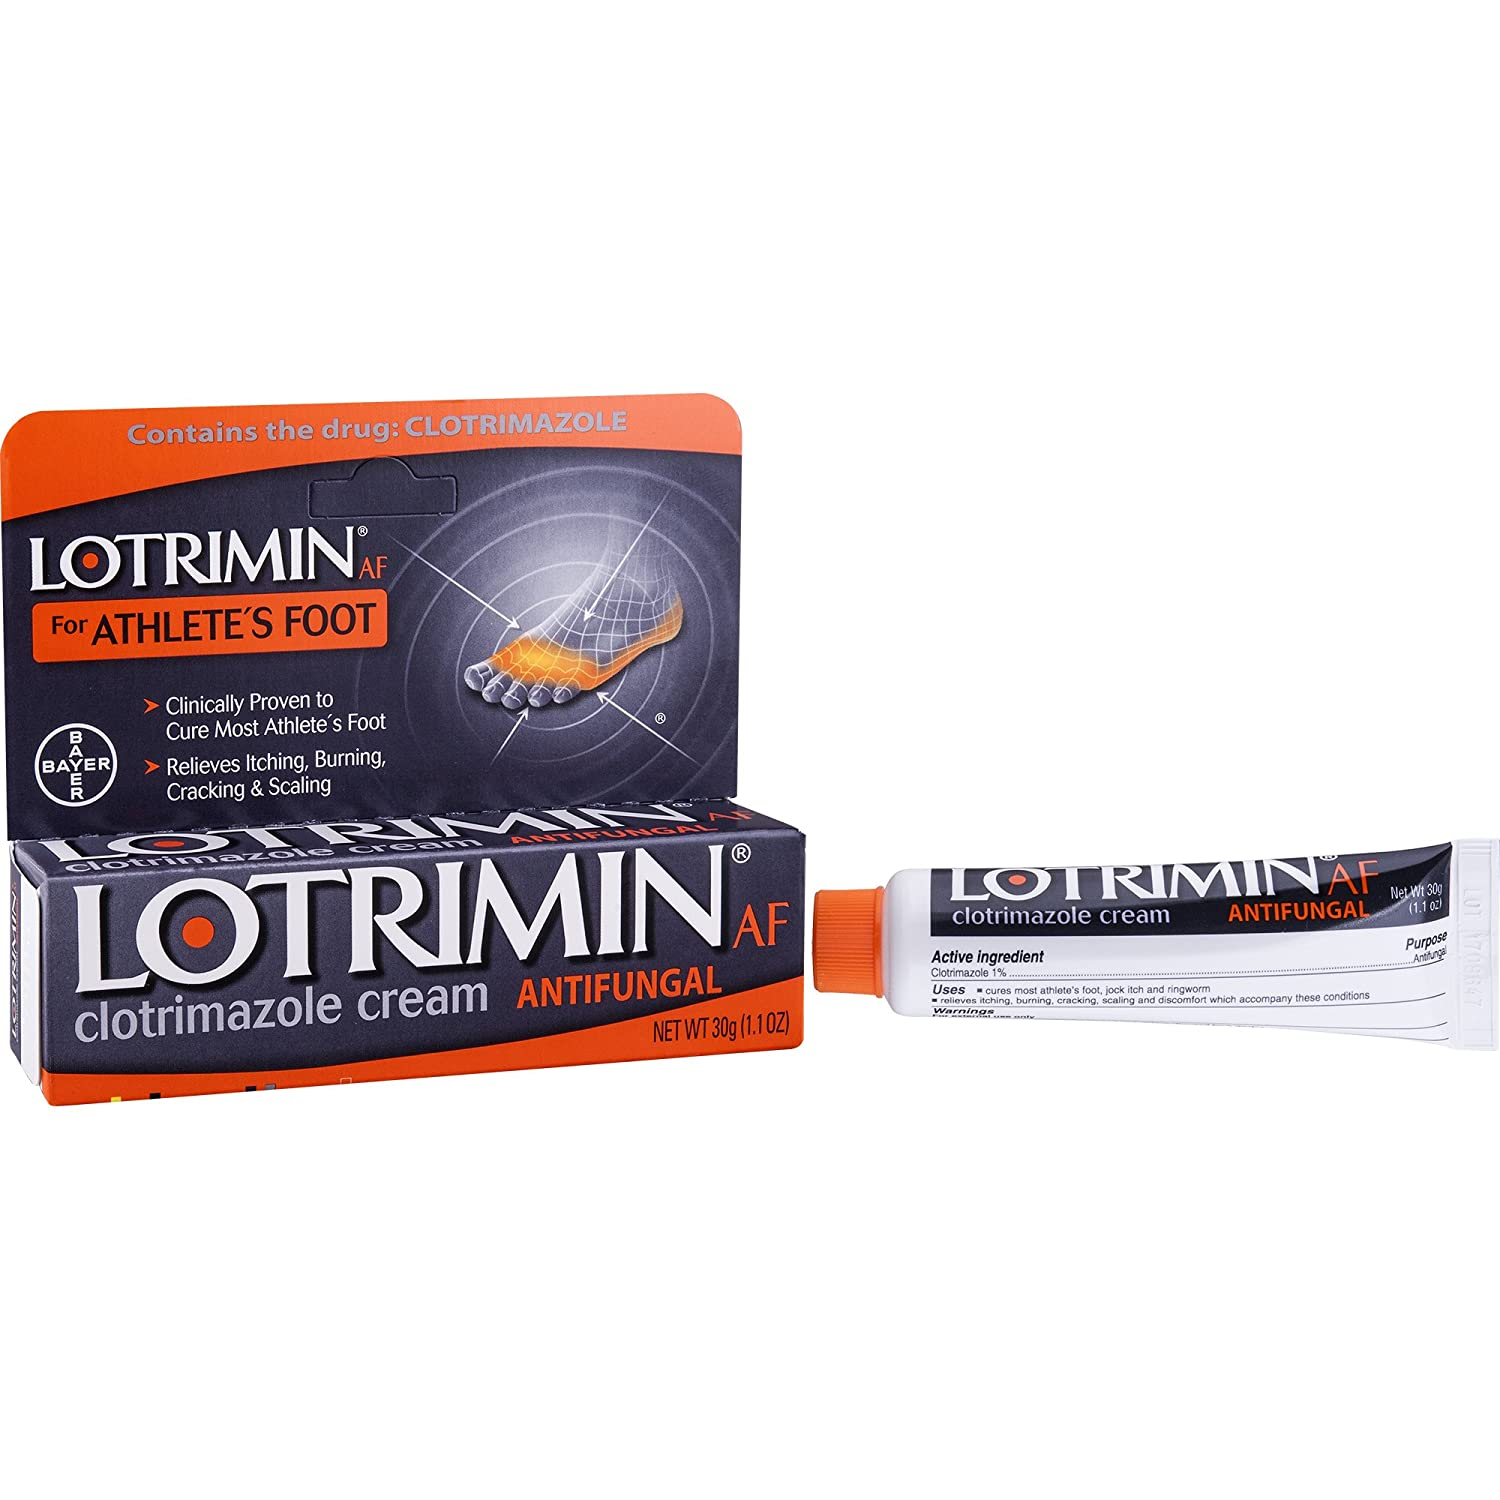 Lotrimin AF Cream for Athlete's Foot, Clotrimazole 1% Antifungal Treatment, Clinically Proven Effective Antifungal Treatment of Most AF, Jock Itch and Ringworm, Cream, 1.1 Ounce (30 Grams) 41100408969